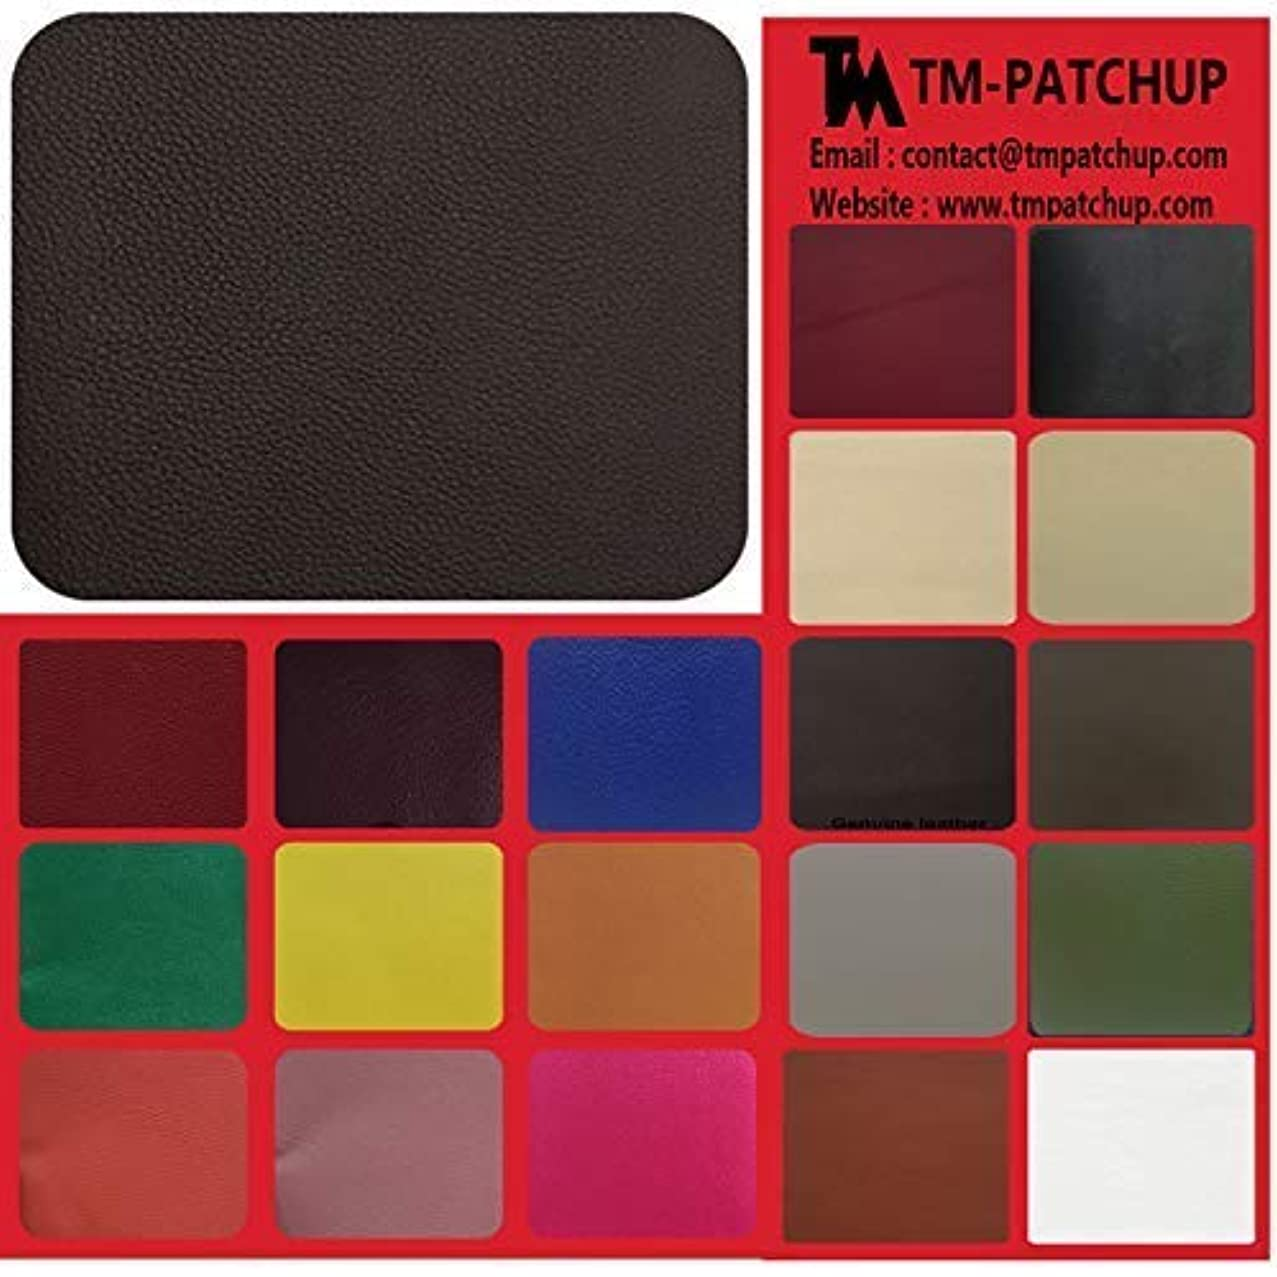 TMgroup, Leather Couch Patch, Genuine Faux Leather Repair Patch, Peel and Stick for Sofas, car Seats, Hand Bags,Furniture, Jackets, Large Size 8-inch x 11-inch (Dark Brown)